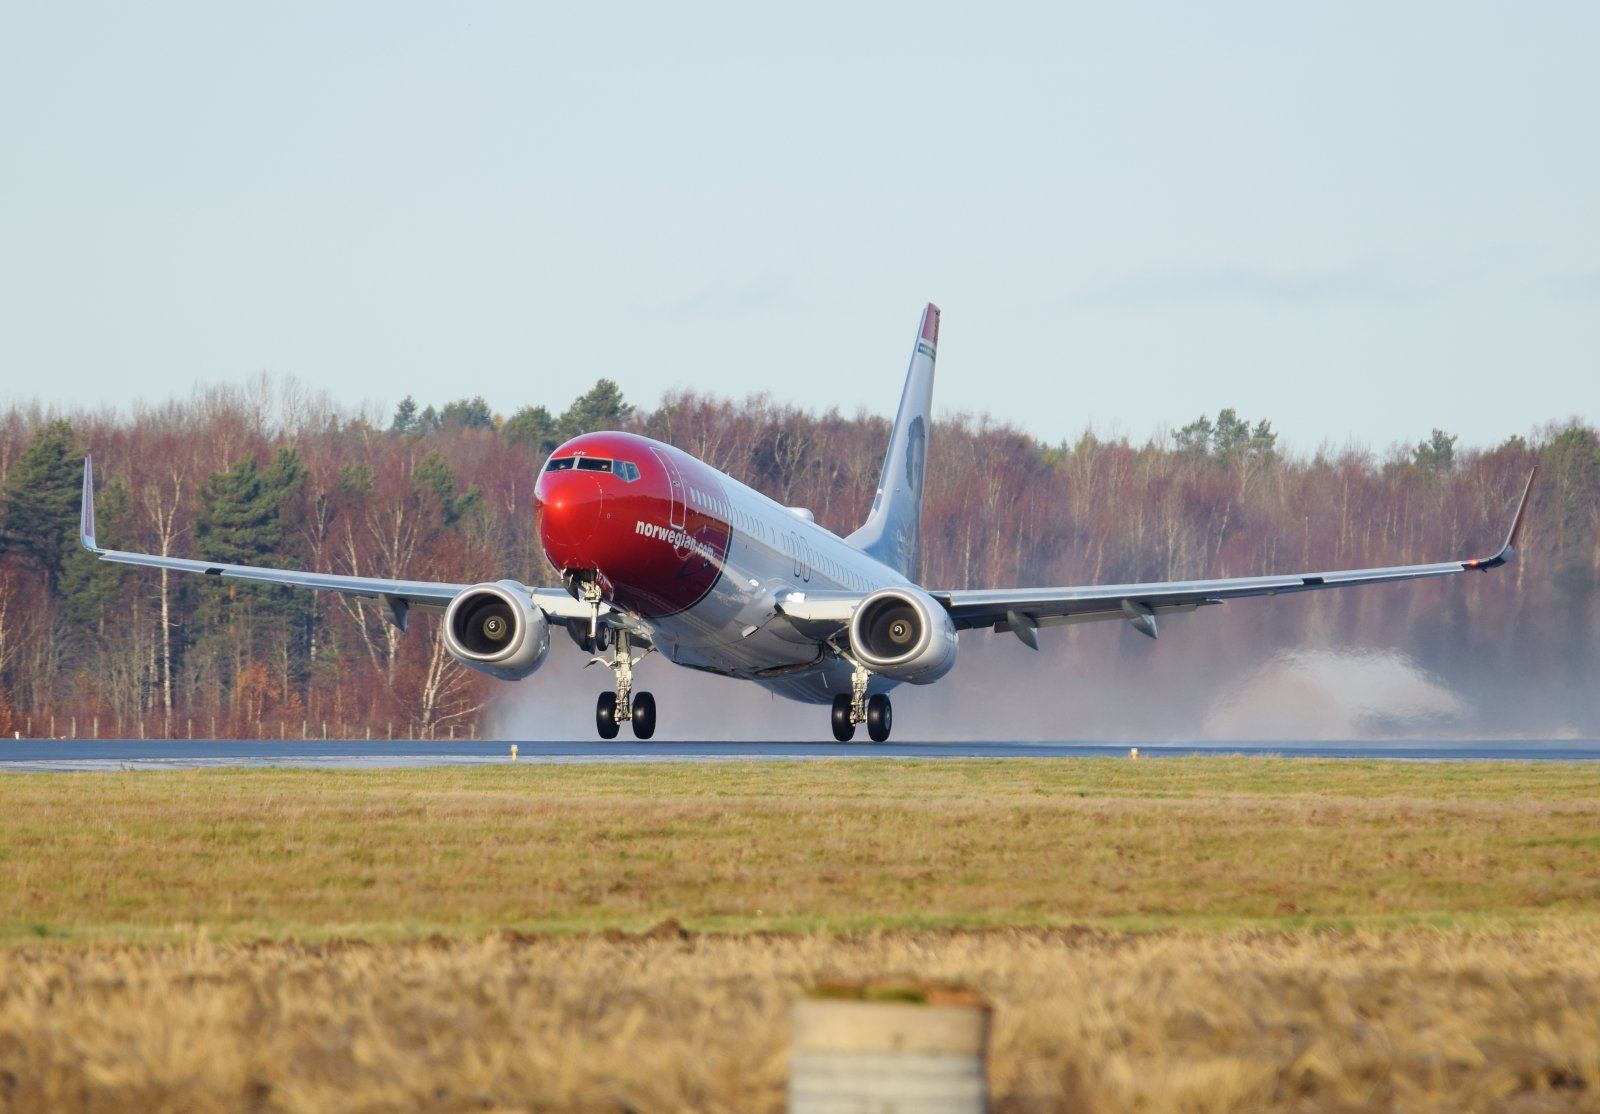 EI-FJY - Boeing 737-8JP - Norwegian Air International - 1.11.2019